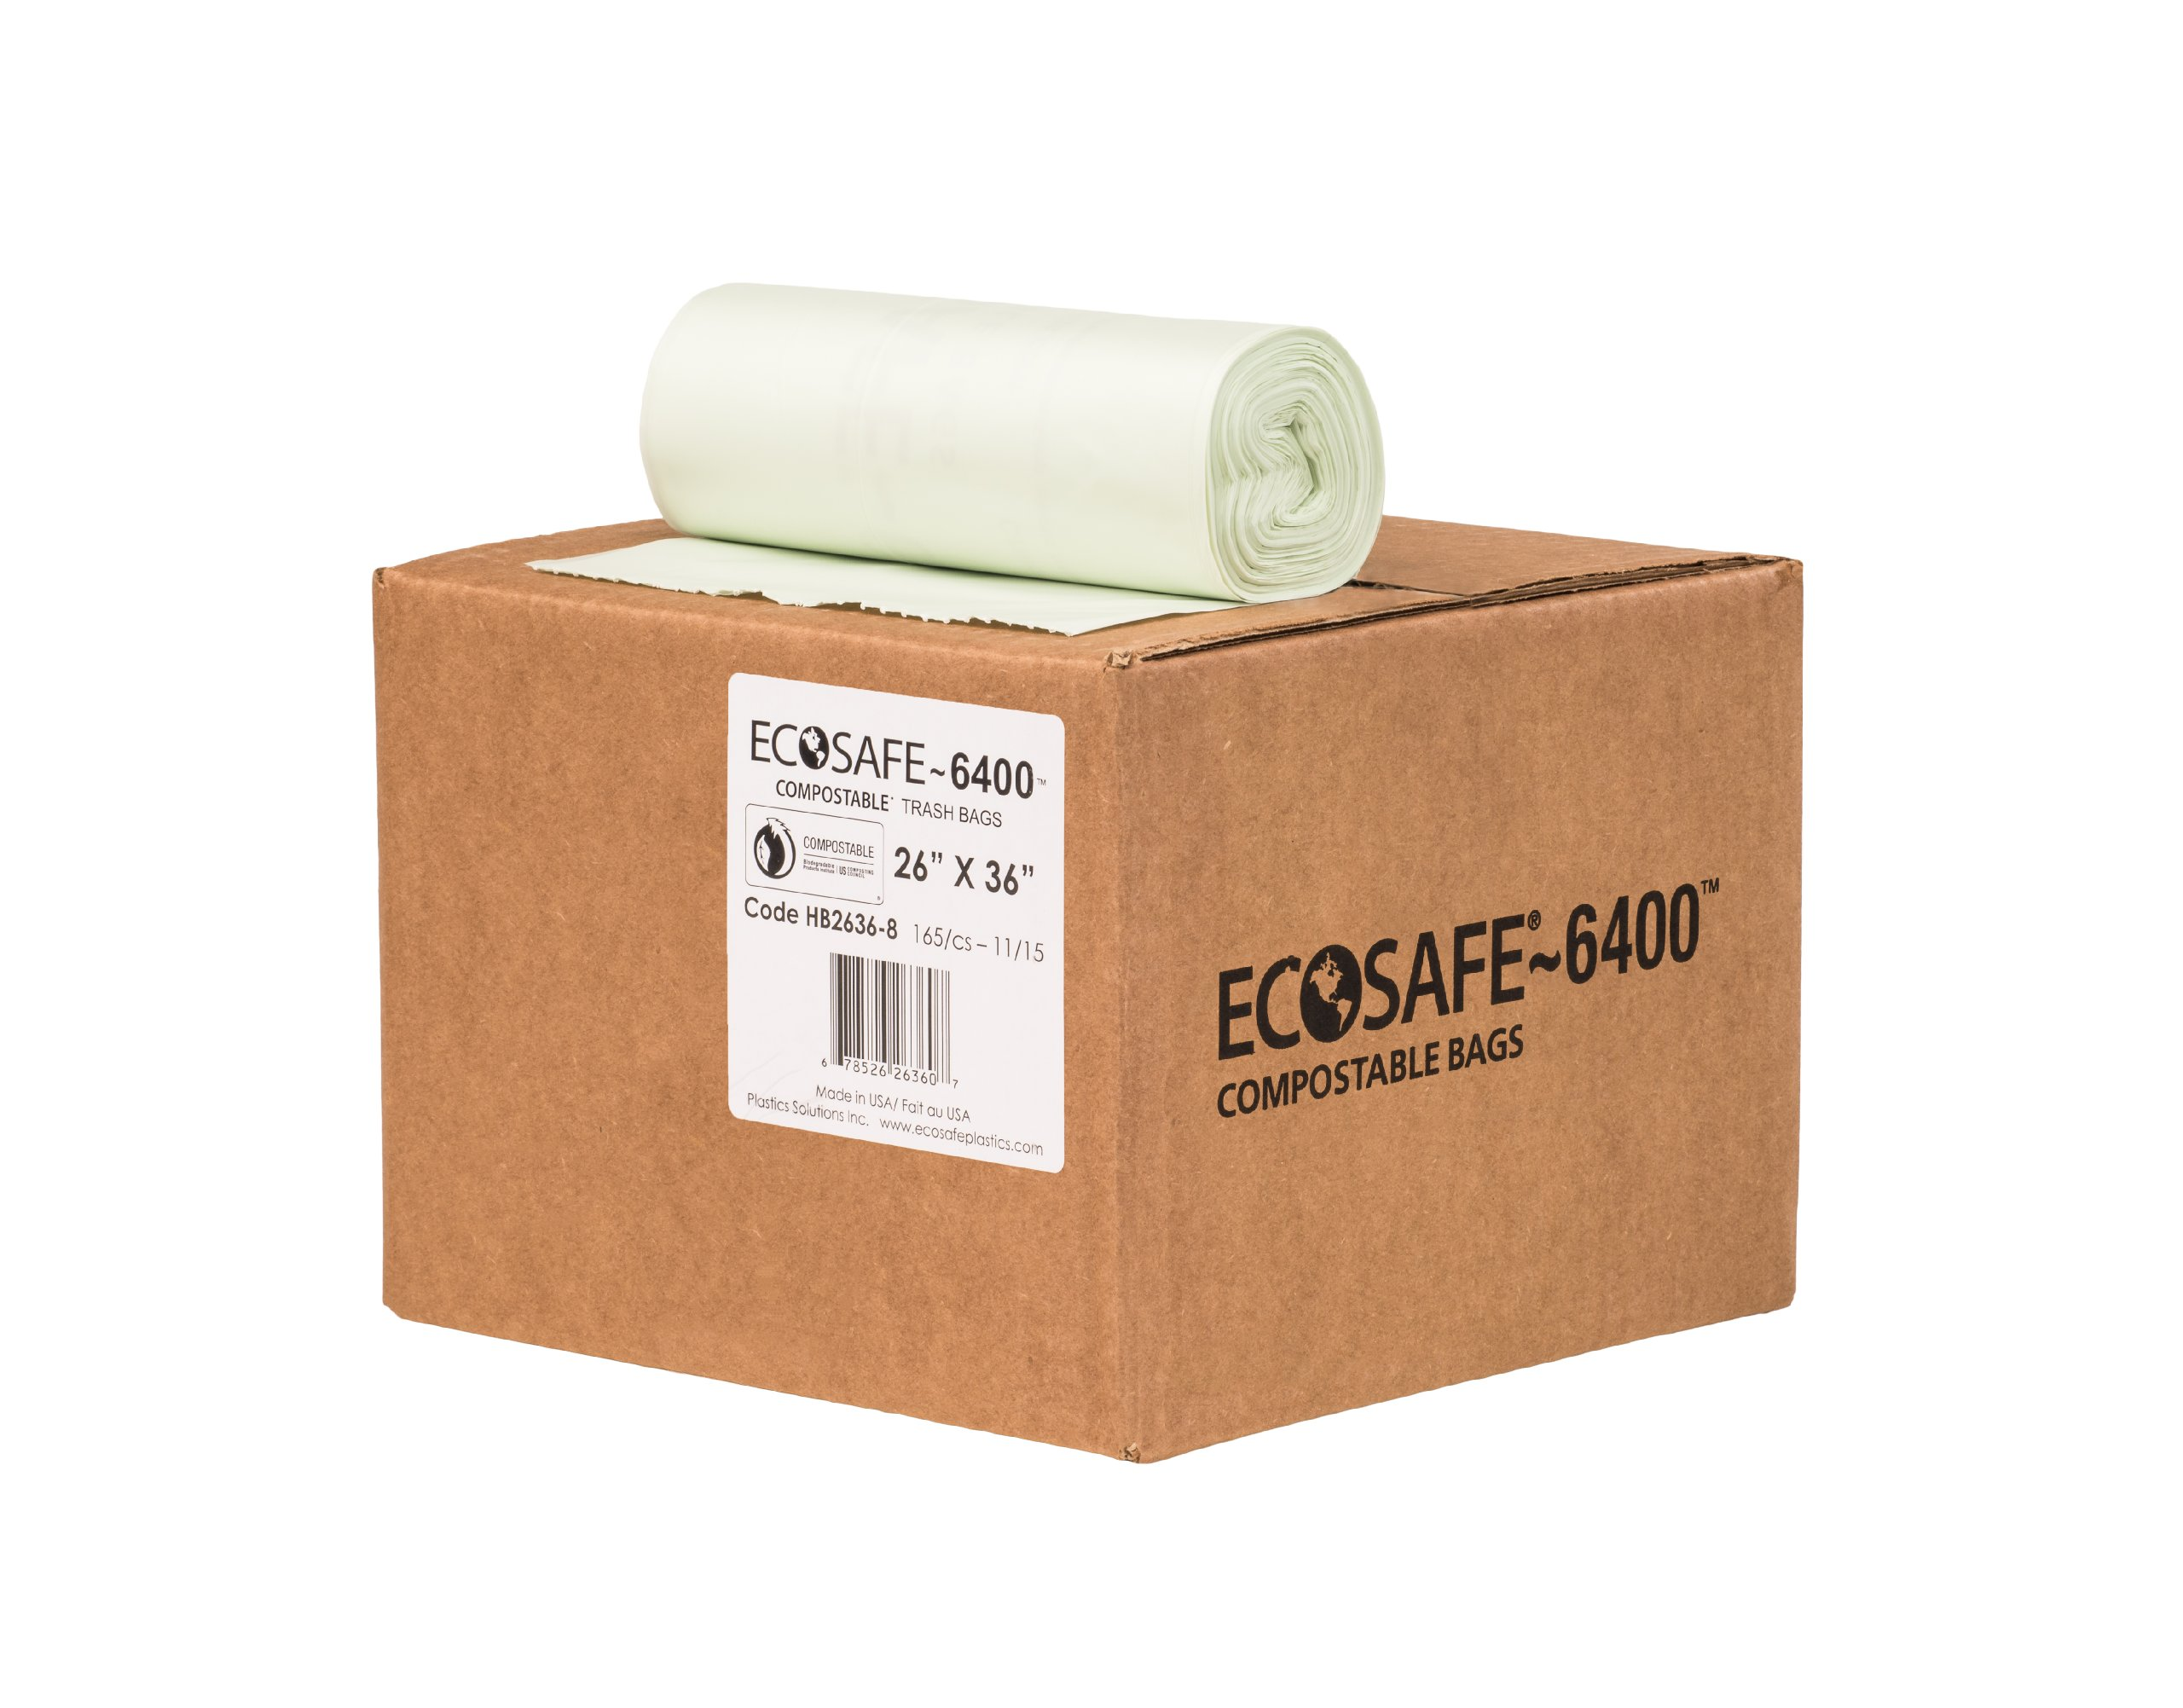 EcoSafe-6400 HB2636-8 Compostable Bag, Certified Compostable, 20-Gallon, Green (Pack of 165) by EcoSafe (Image #1)